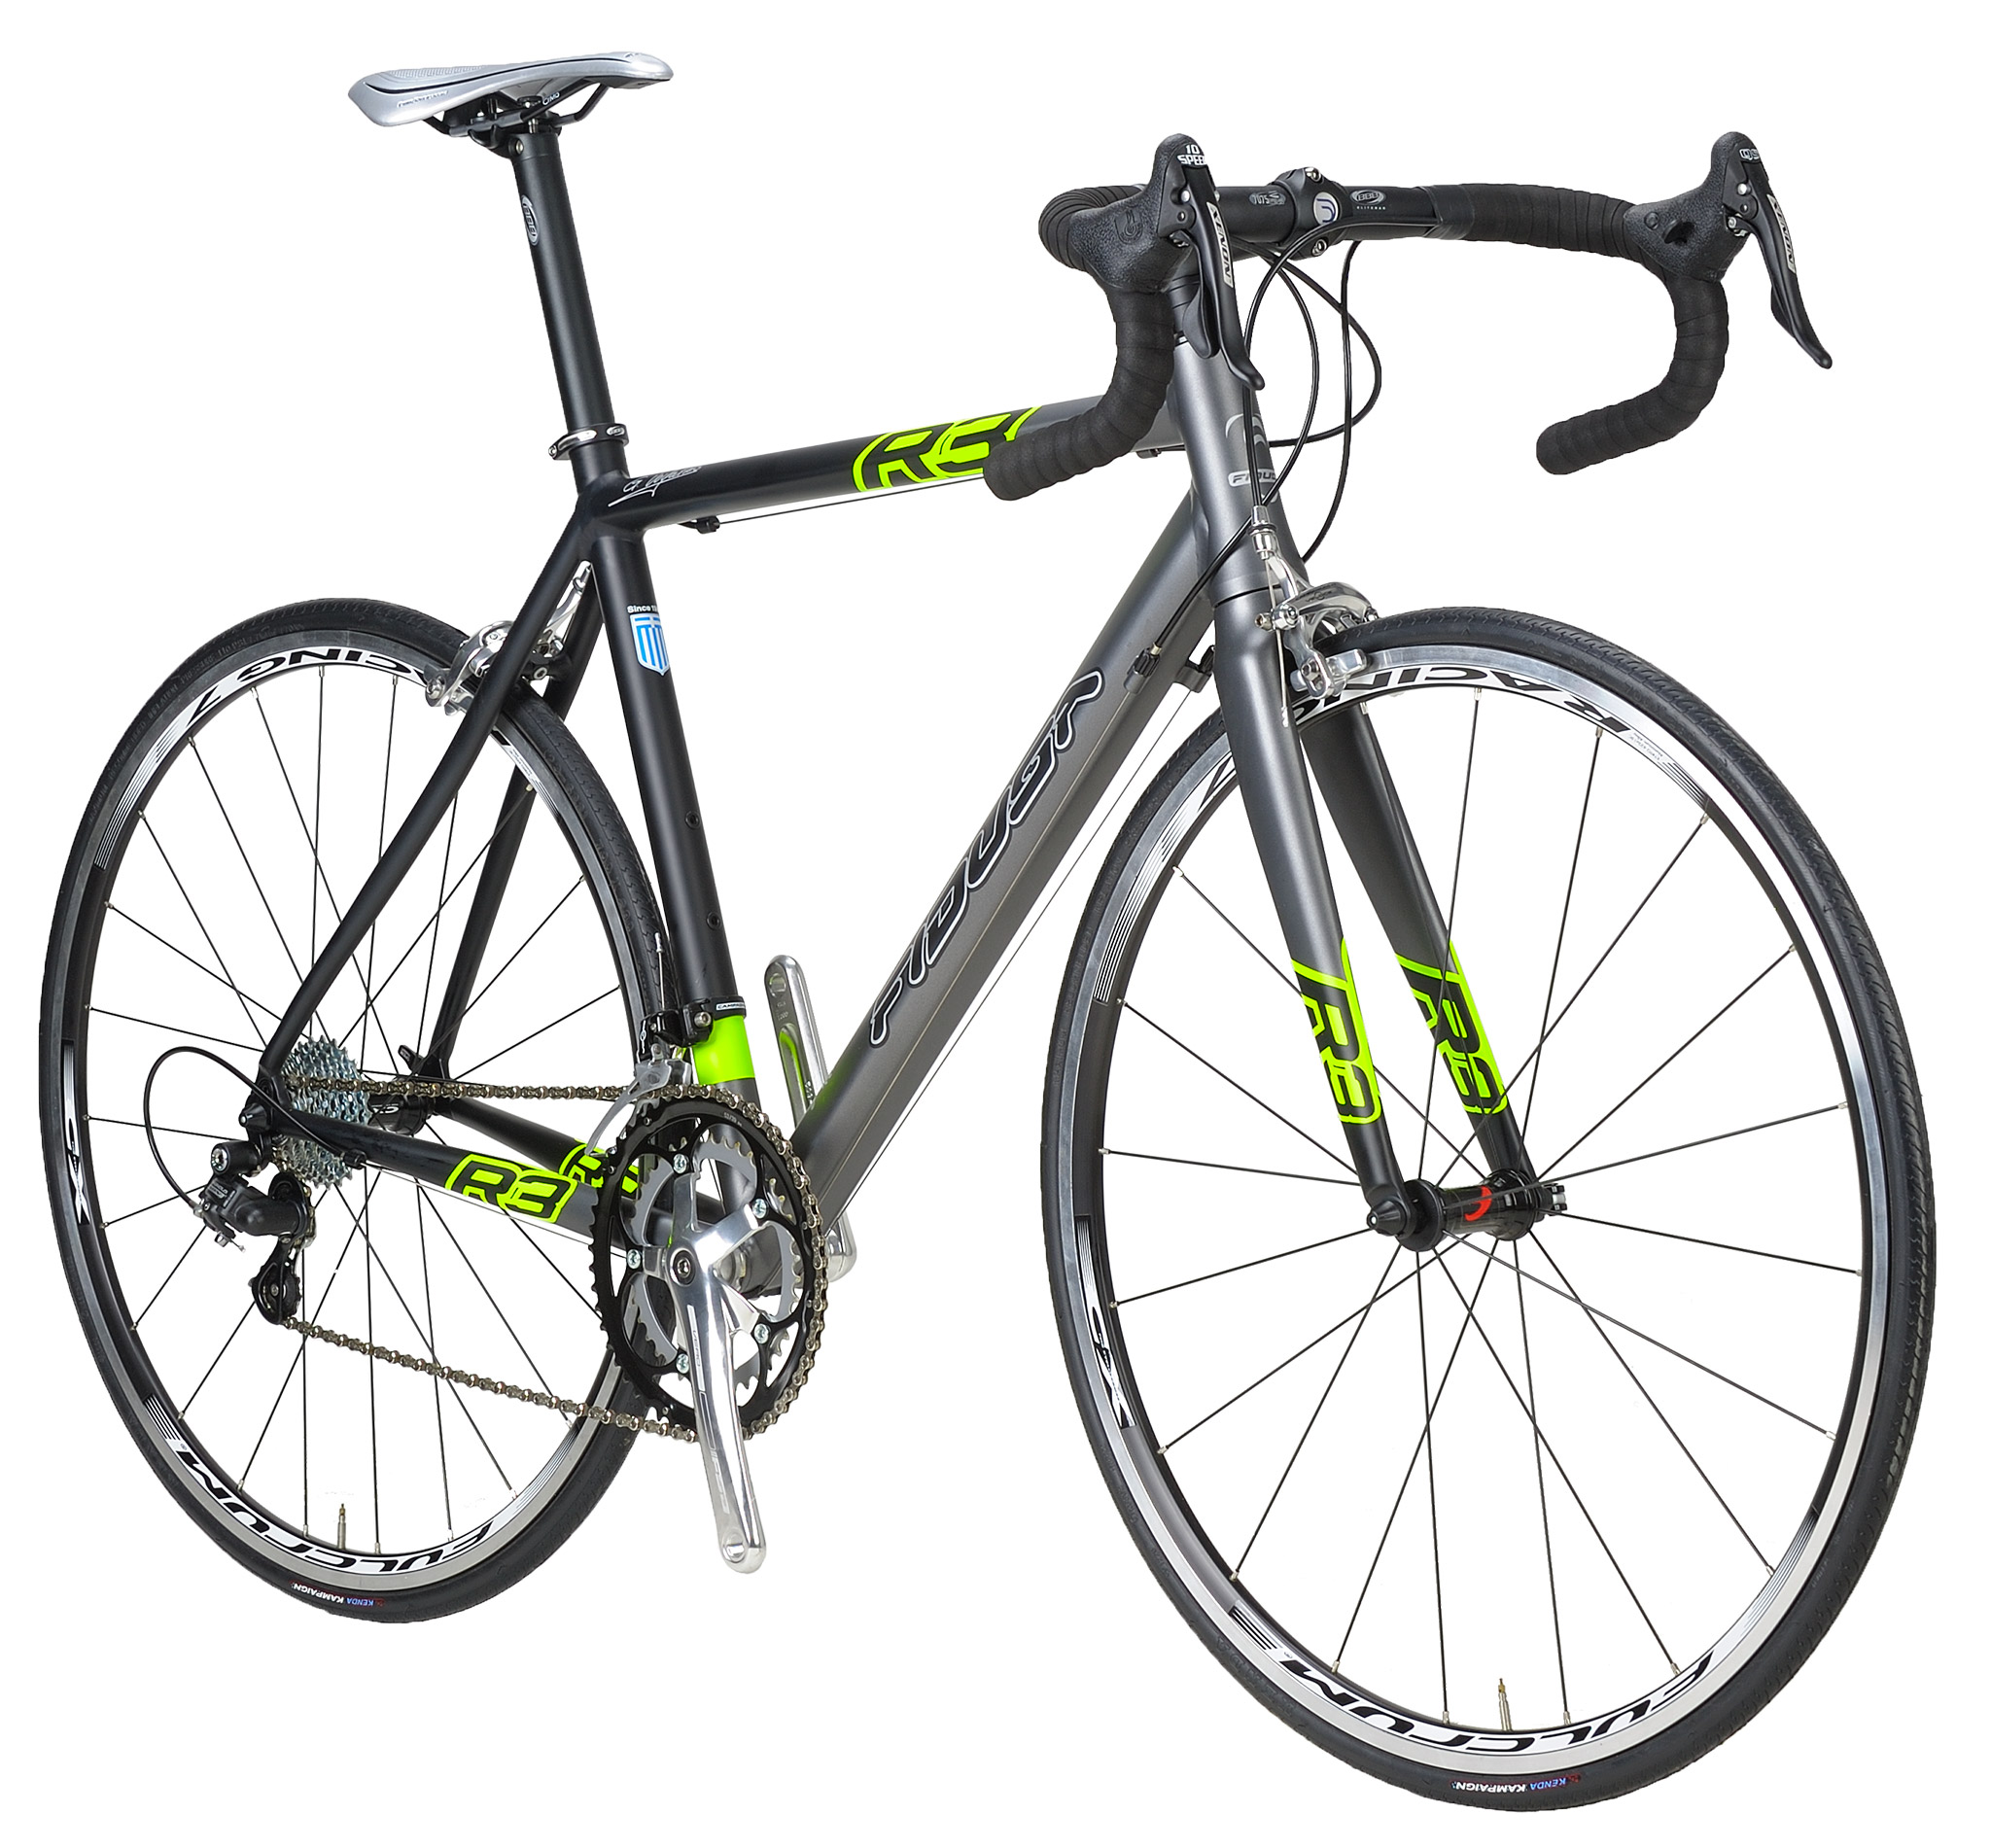 FIDUSA-R3-Alloy-Road-Bicycle1 Ποδήλατα